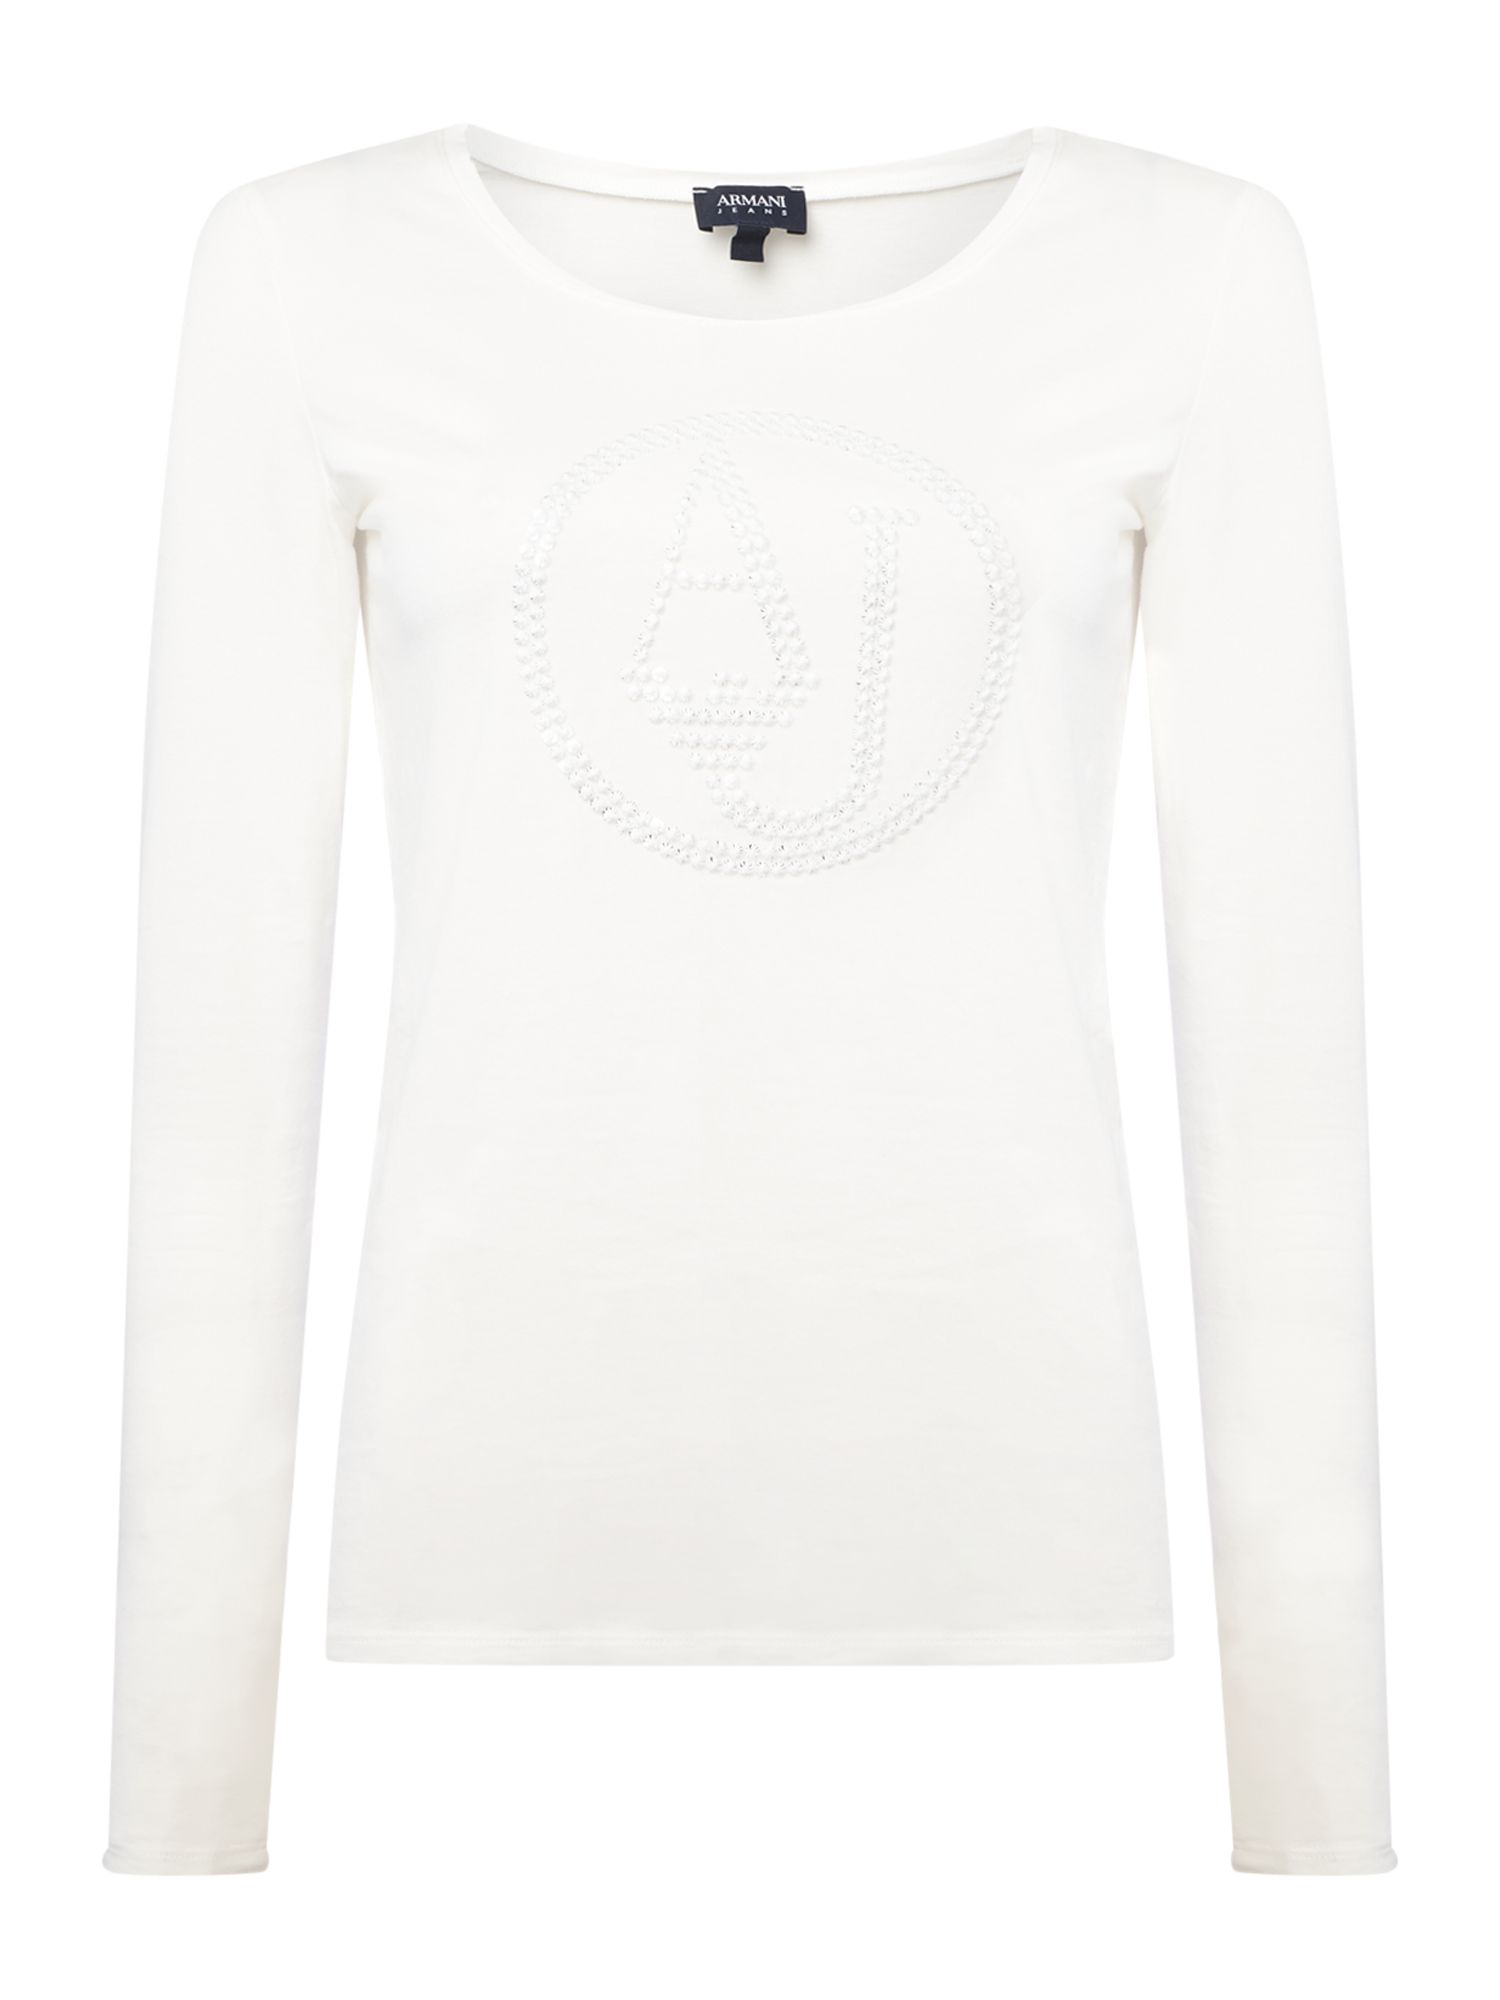 Armani Jeans Crew neck logo top in bianco latte, White